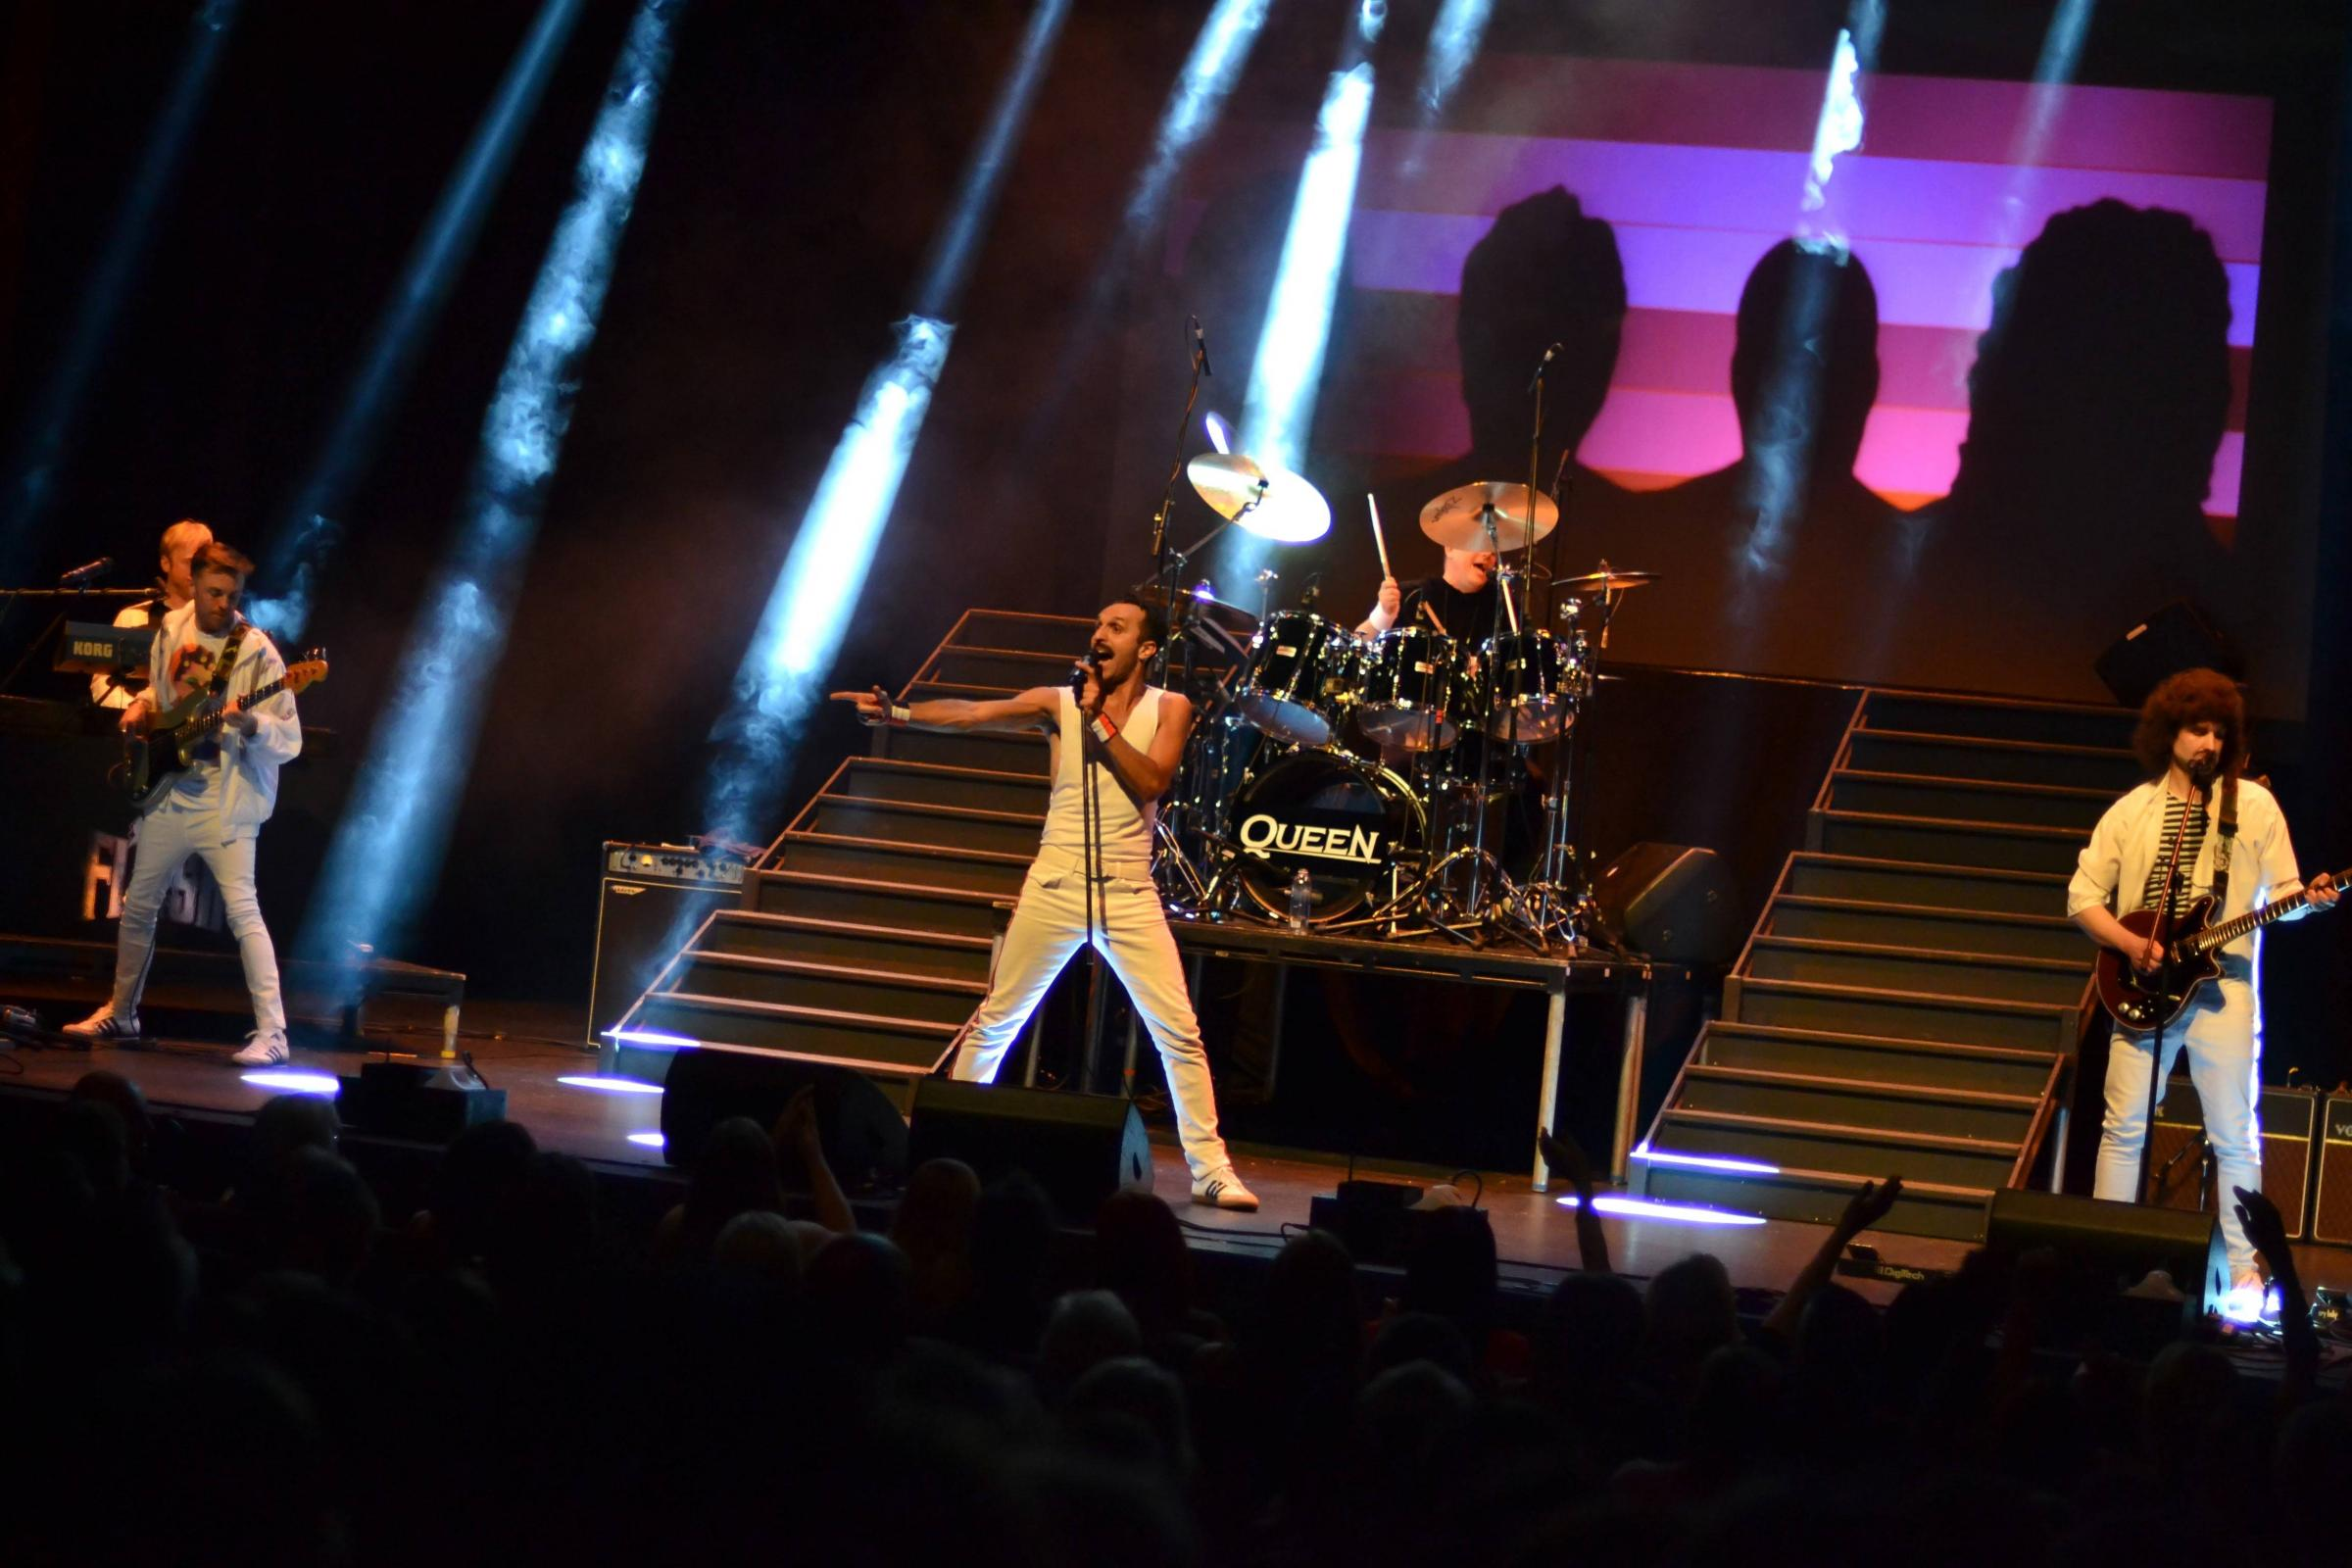 QUEEN TRIBUTE: Flash are playing at the West Cliff Theatre